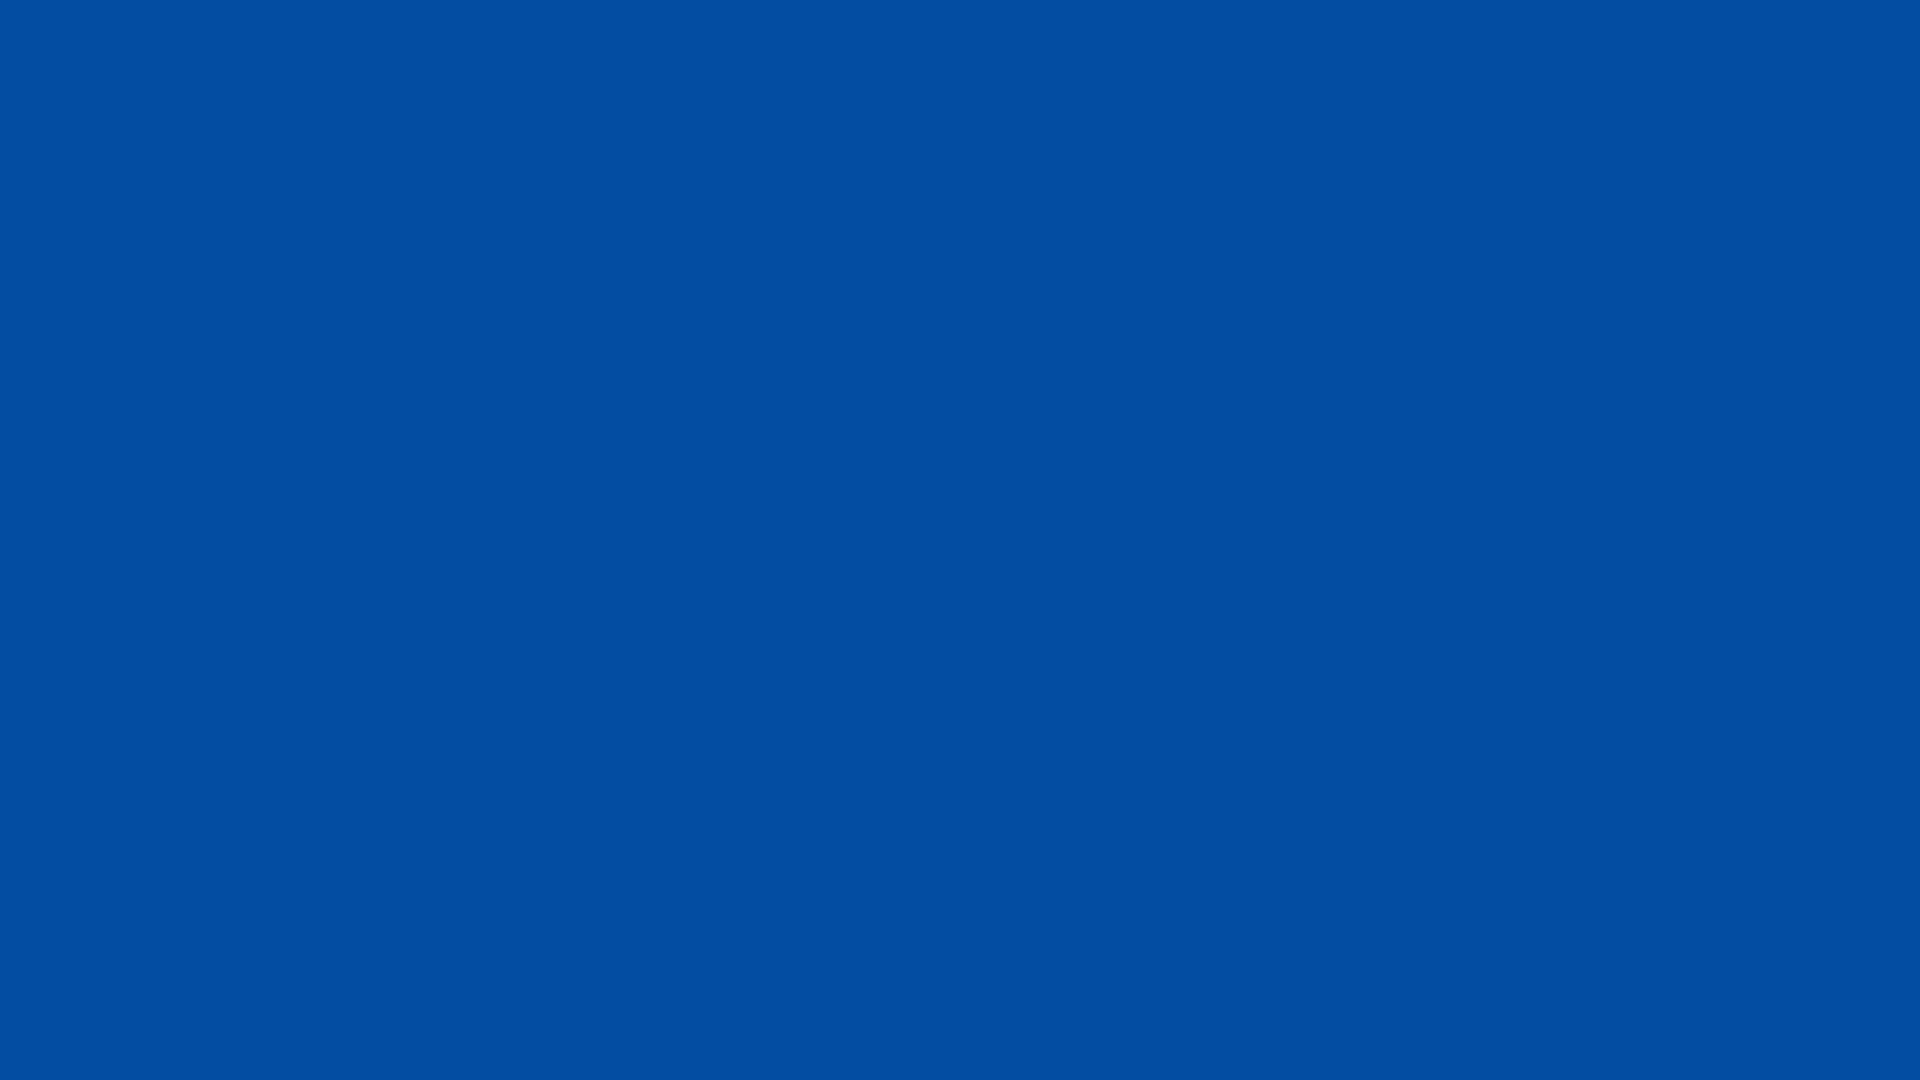 Samsung Blue Color Scheme Brand And Logo Schemecolor Com